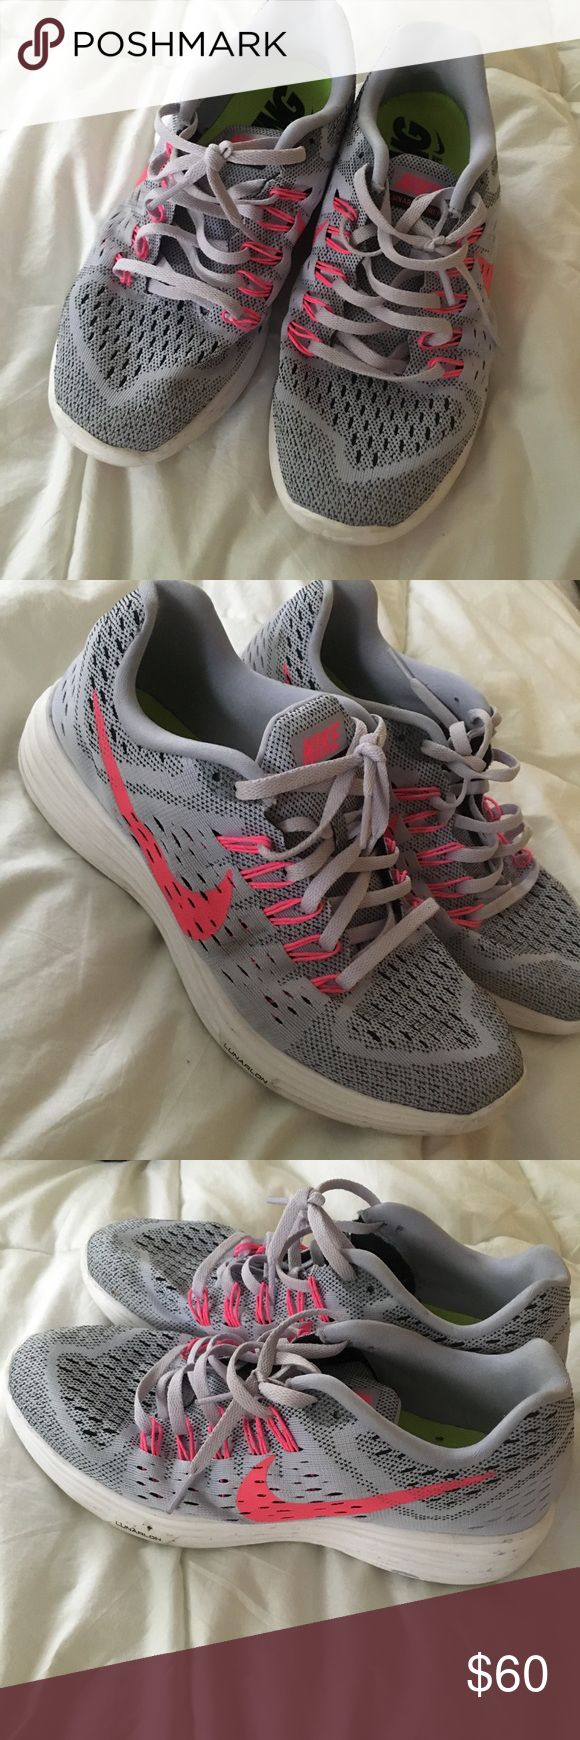 Nike Women's Lunar Trainer Running Sneaker Light use! Perfect for running, walking, and matching cute outfits! Open to offers😊 Nike Shoes Sneakers